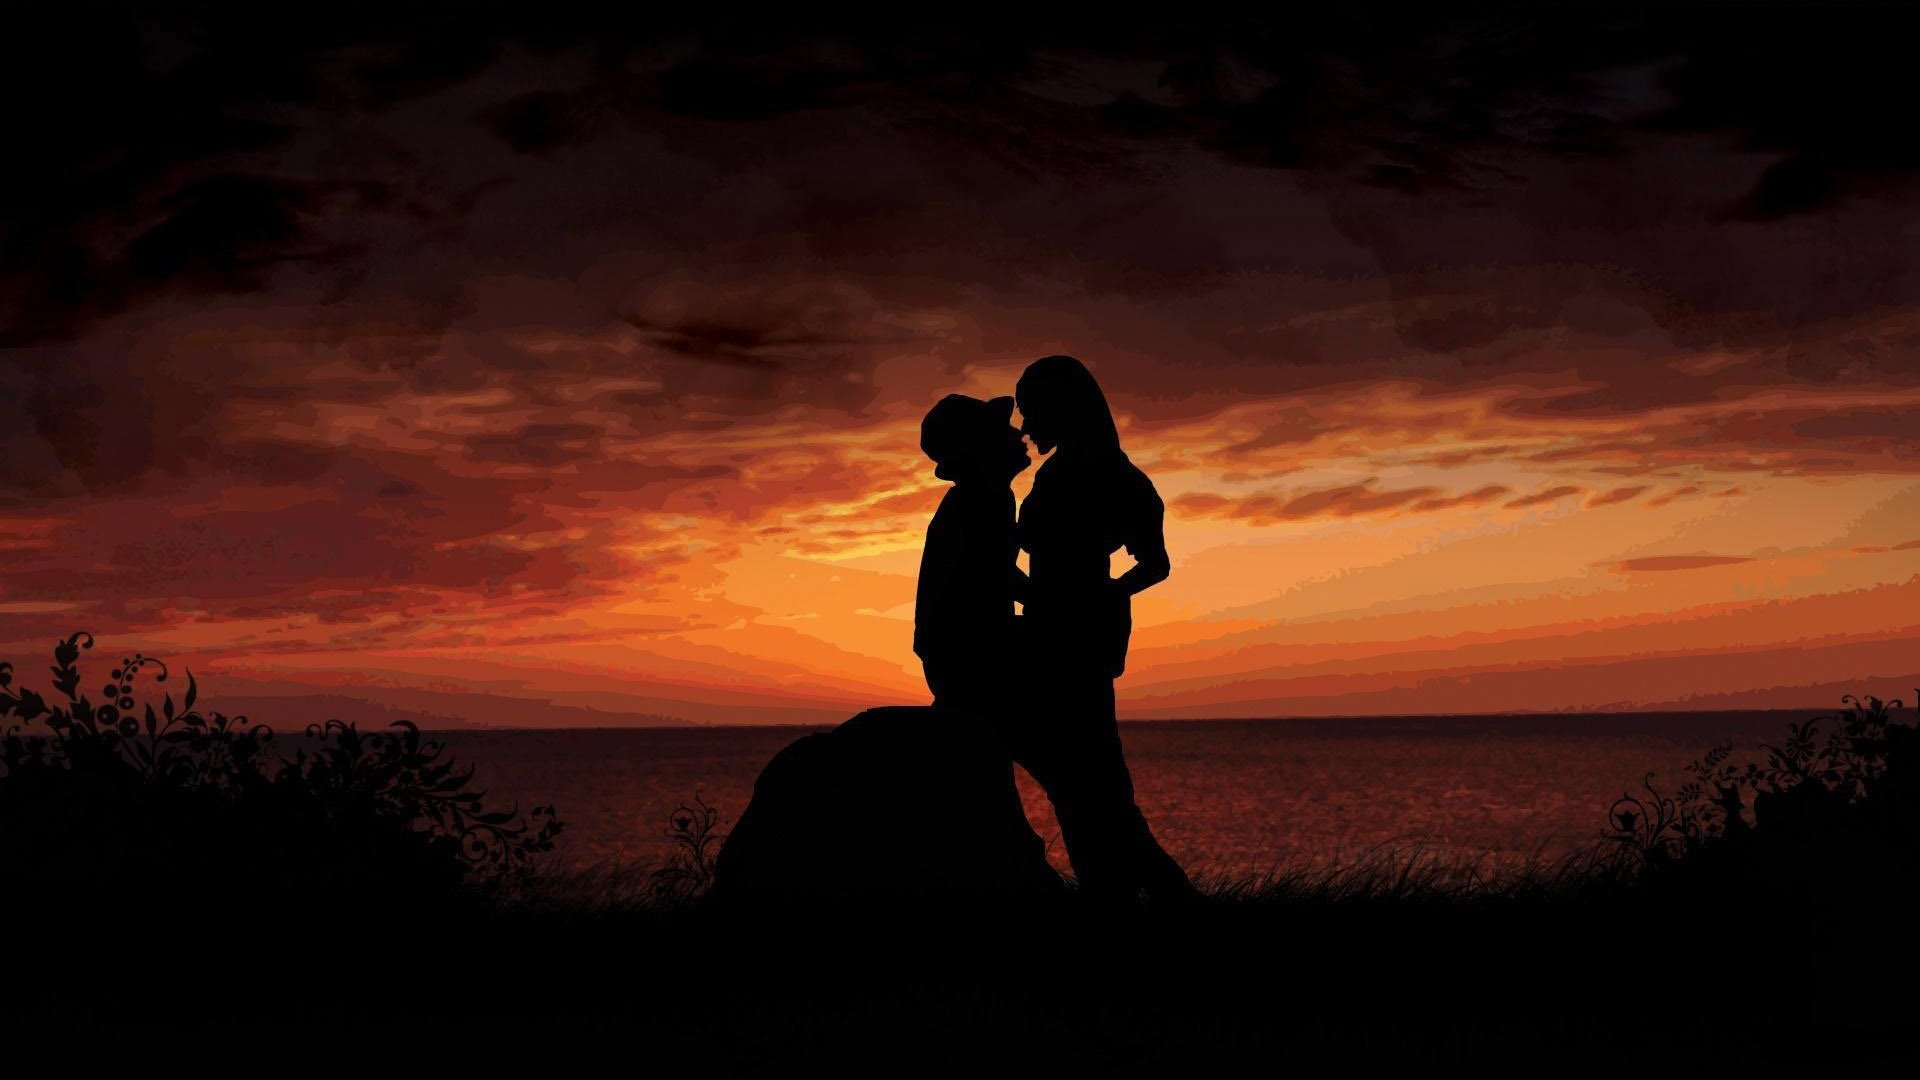 hd silhouette love couple romantic photo background